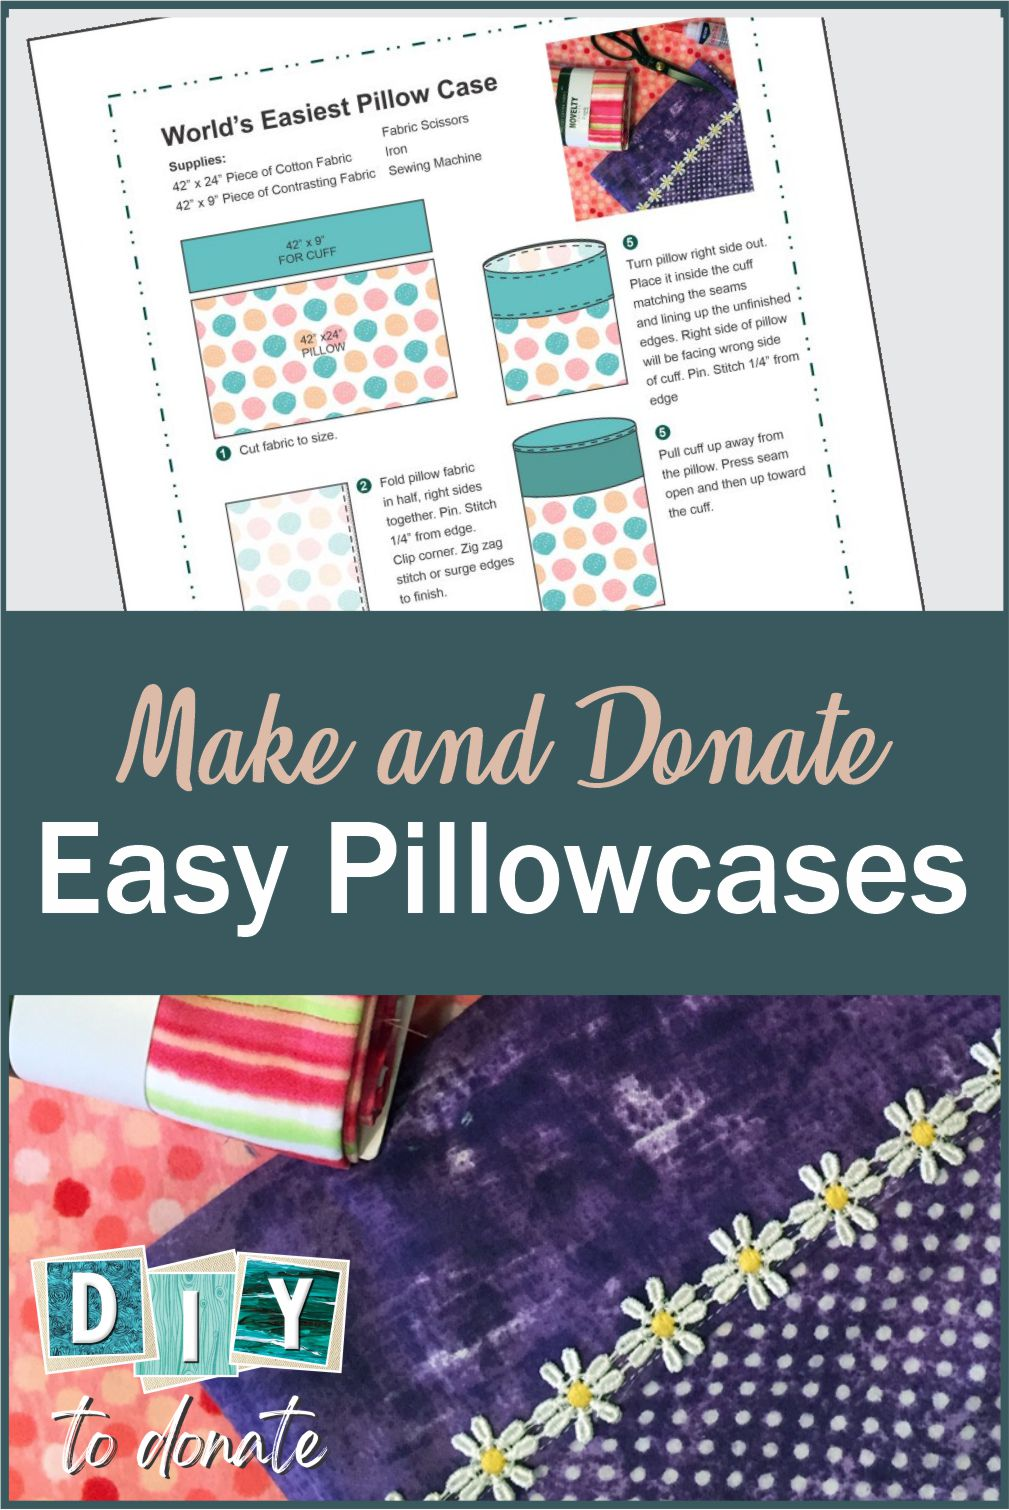 We've come up with this easy DIY pillowcase so beginners are guaranteed a successful outcome. Included are tips and free DIY printable. #diytodonate #printable #diydirections #pillowcases #easyhandmade #tips #diy #donate #giveback #helpers